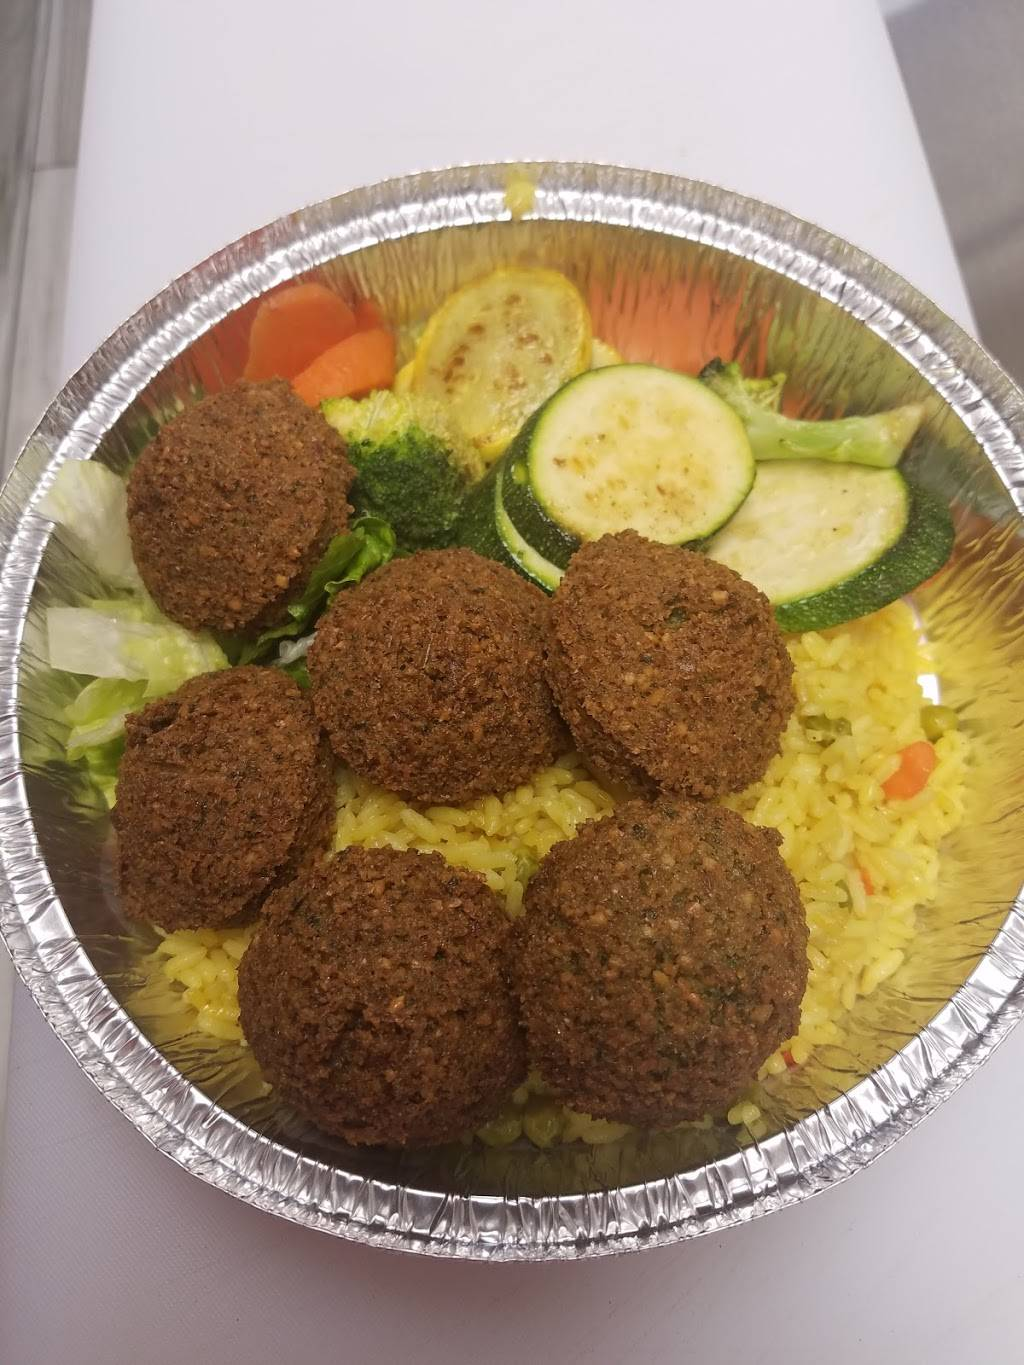 City platters | restaurant | 6 Orient Way, Rutherford, NJ 07070, USA | 2015287224 OR +1 201-528-7224